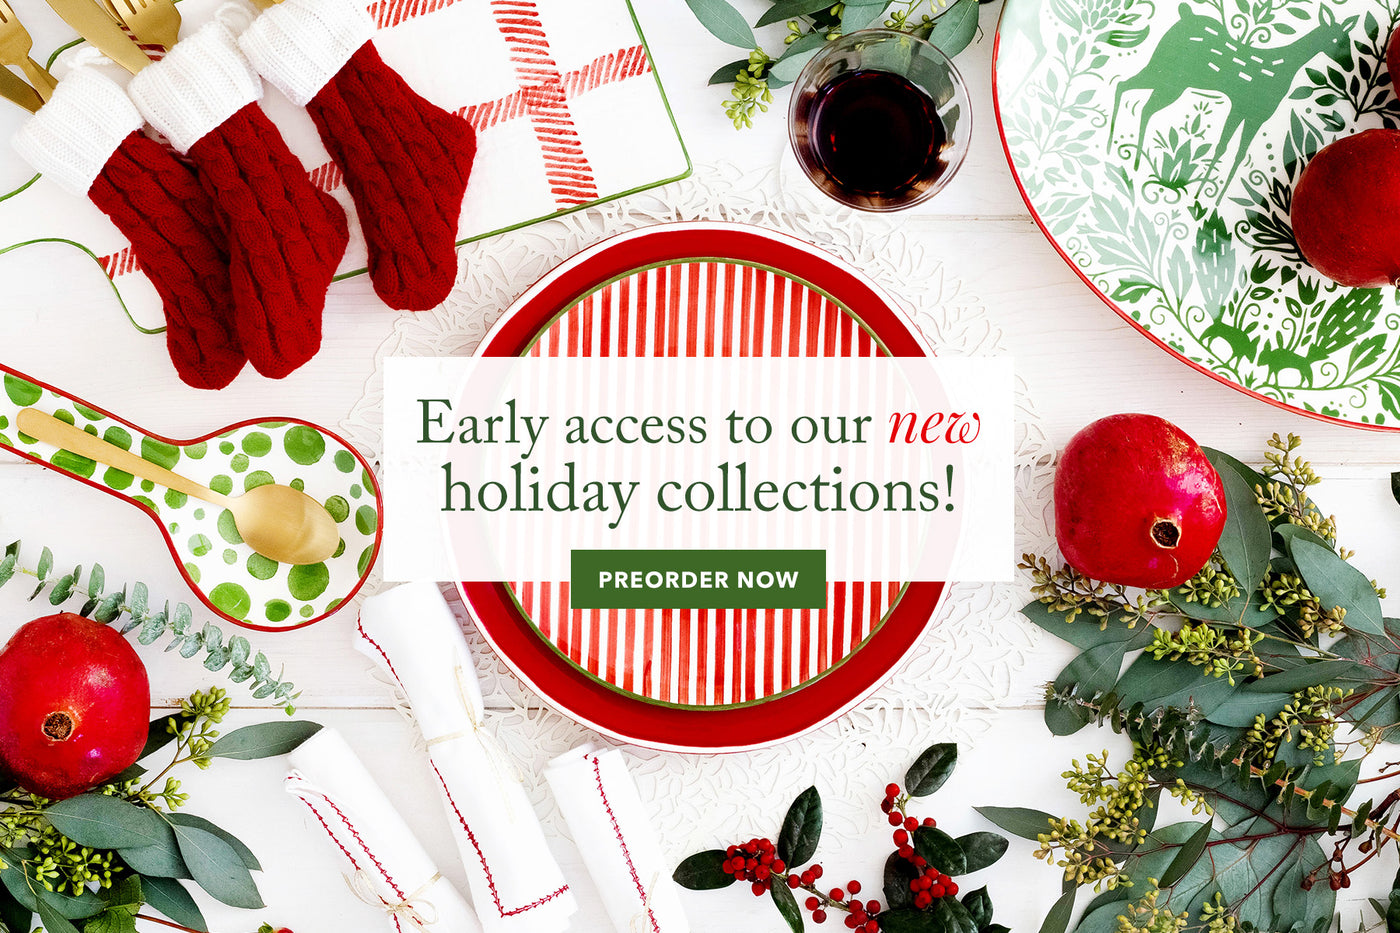 Early Access to our NEW Holiday Collections! Preorder, now!